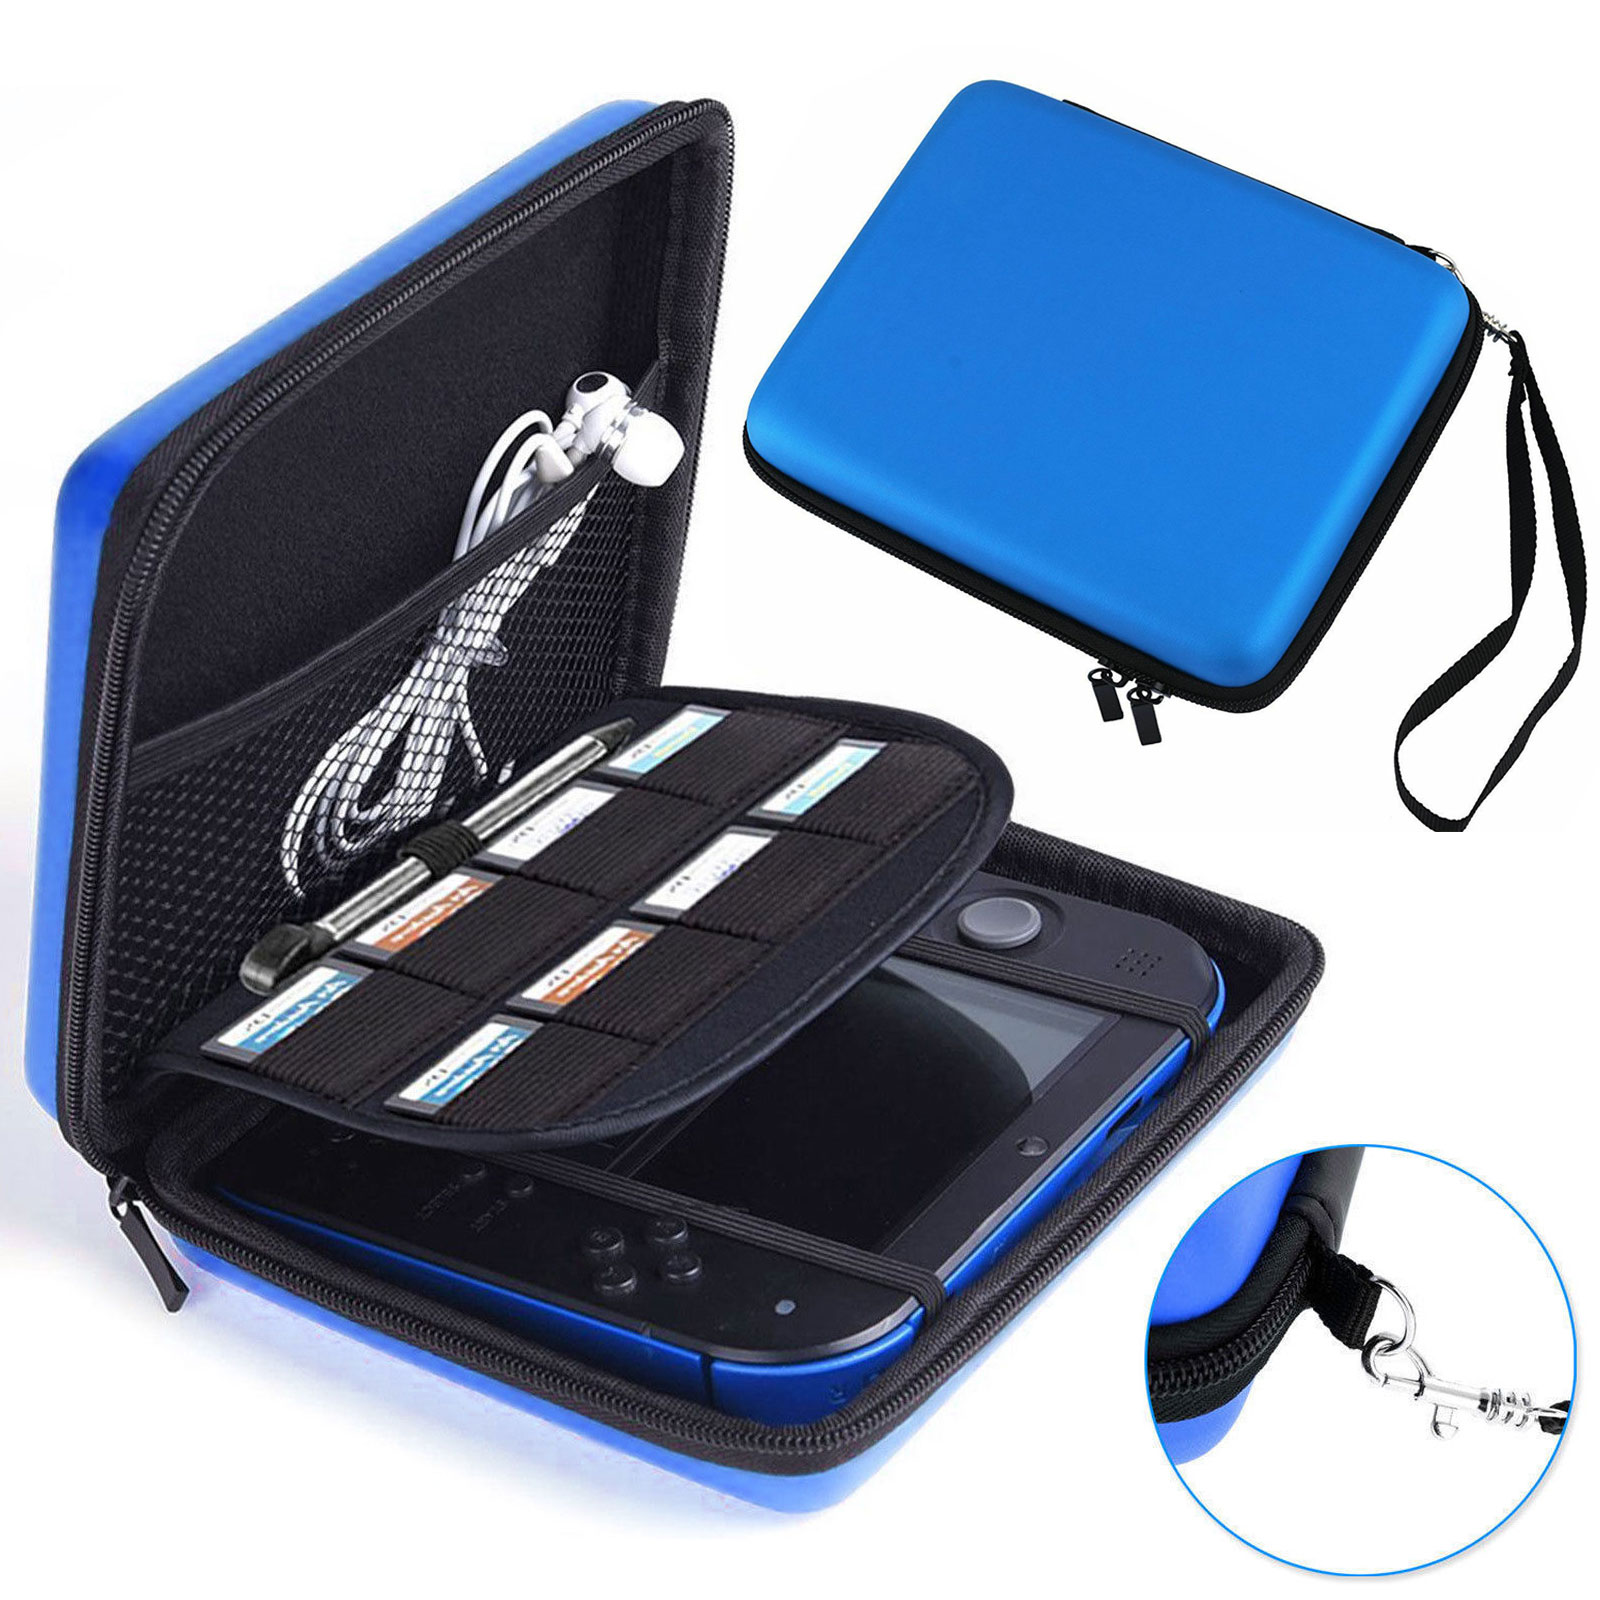 Travel Protective Carrying Storage Bag Compatible for Nintendo 2DS - Hard Shell and Accessories Pocket Storage Organizer for 2DS with Double Zipper, Wrist Strap and Game Storage